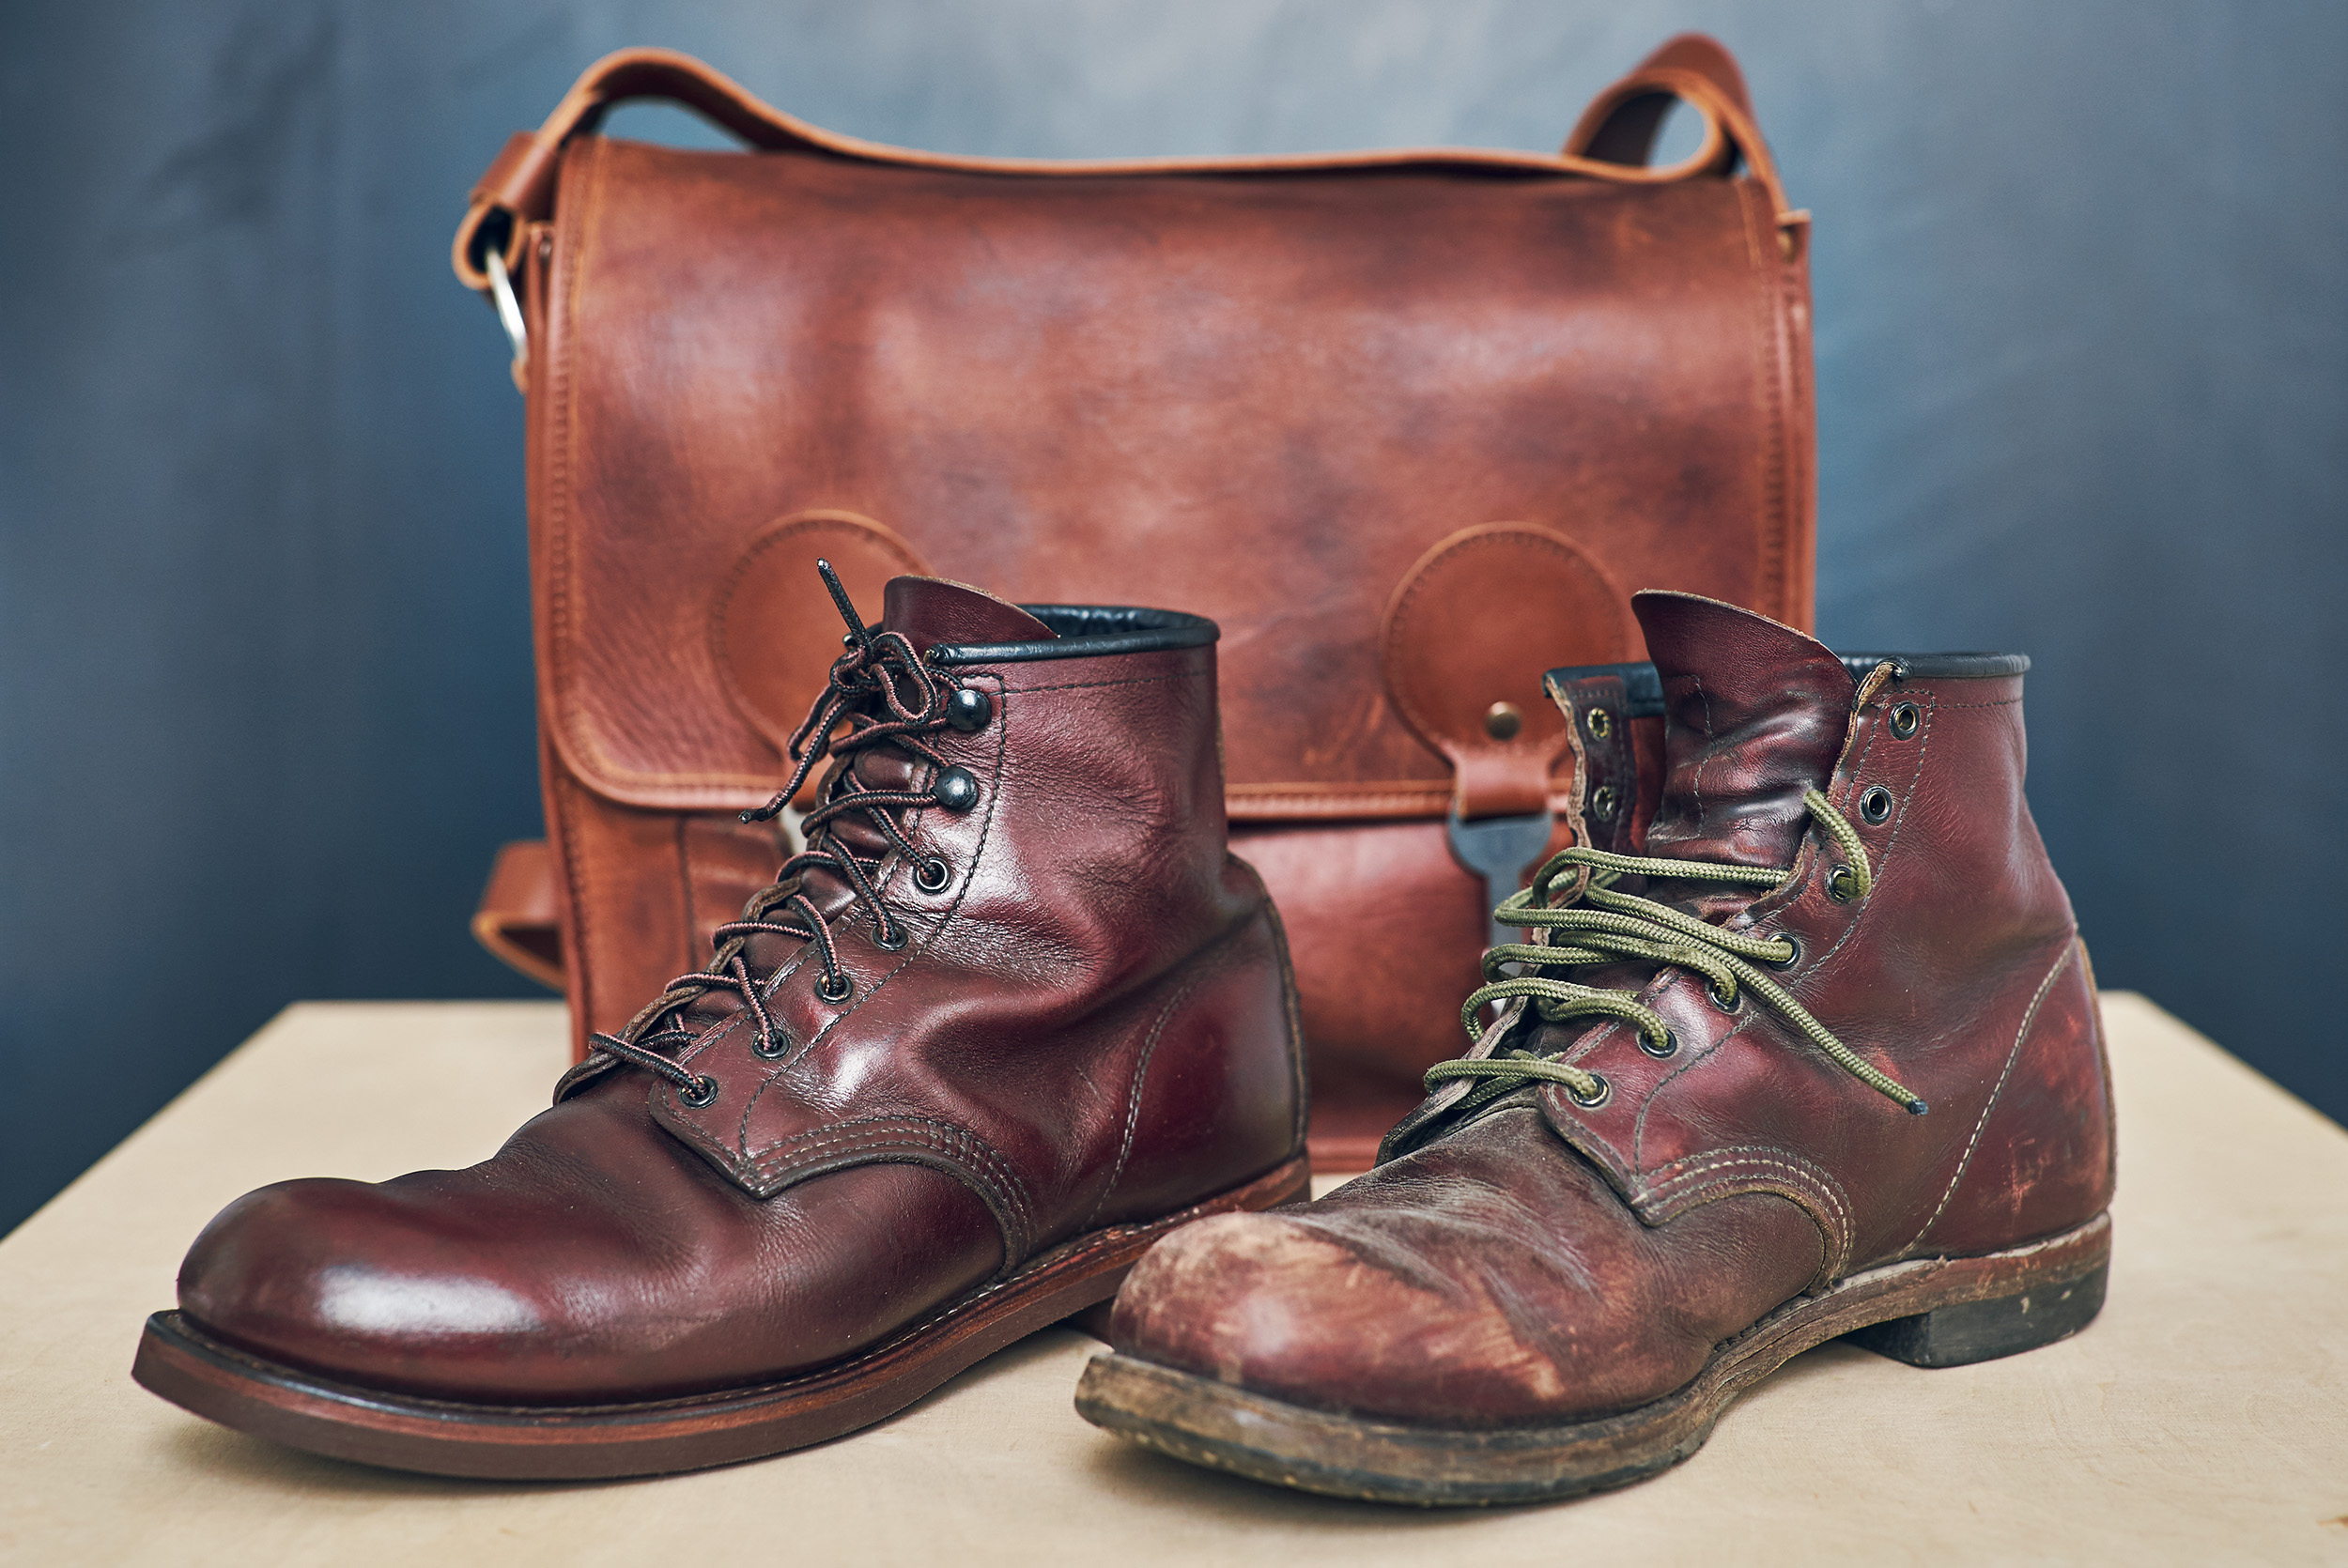 Well used and refurbished Red Wings boots - a great example of a product made to last.